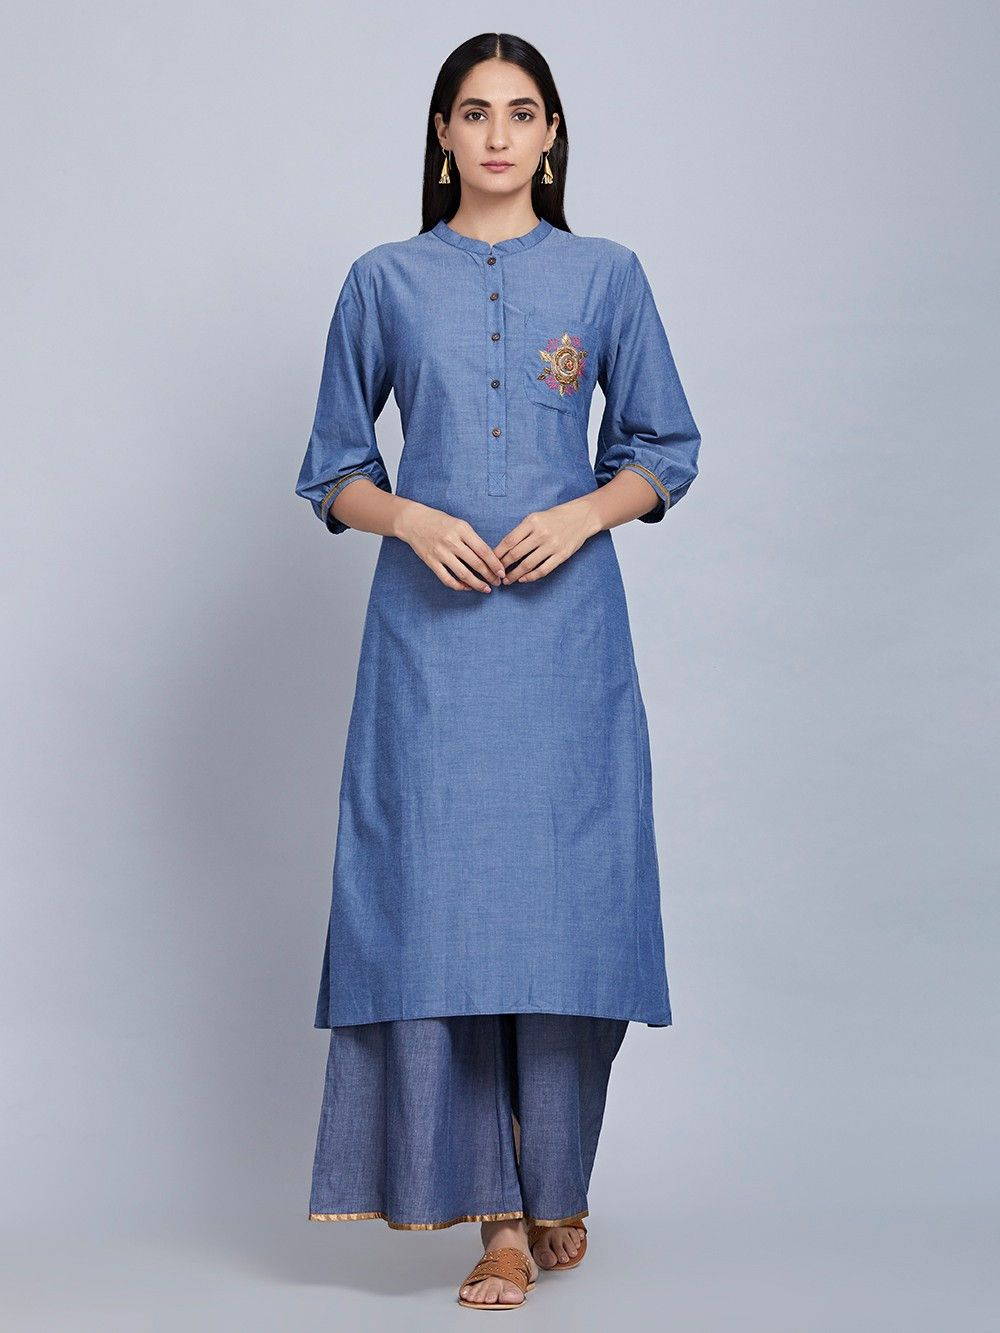 62c9526f5ed Buy Blue Hand Embroidered Cotton Denim Kurta online at Theloom ...